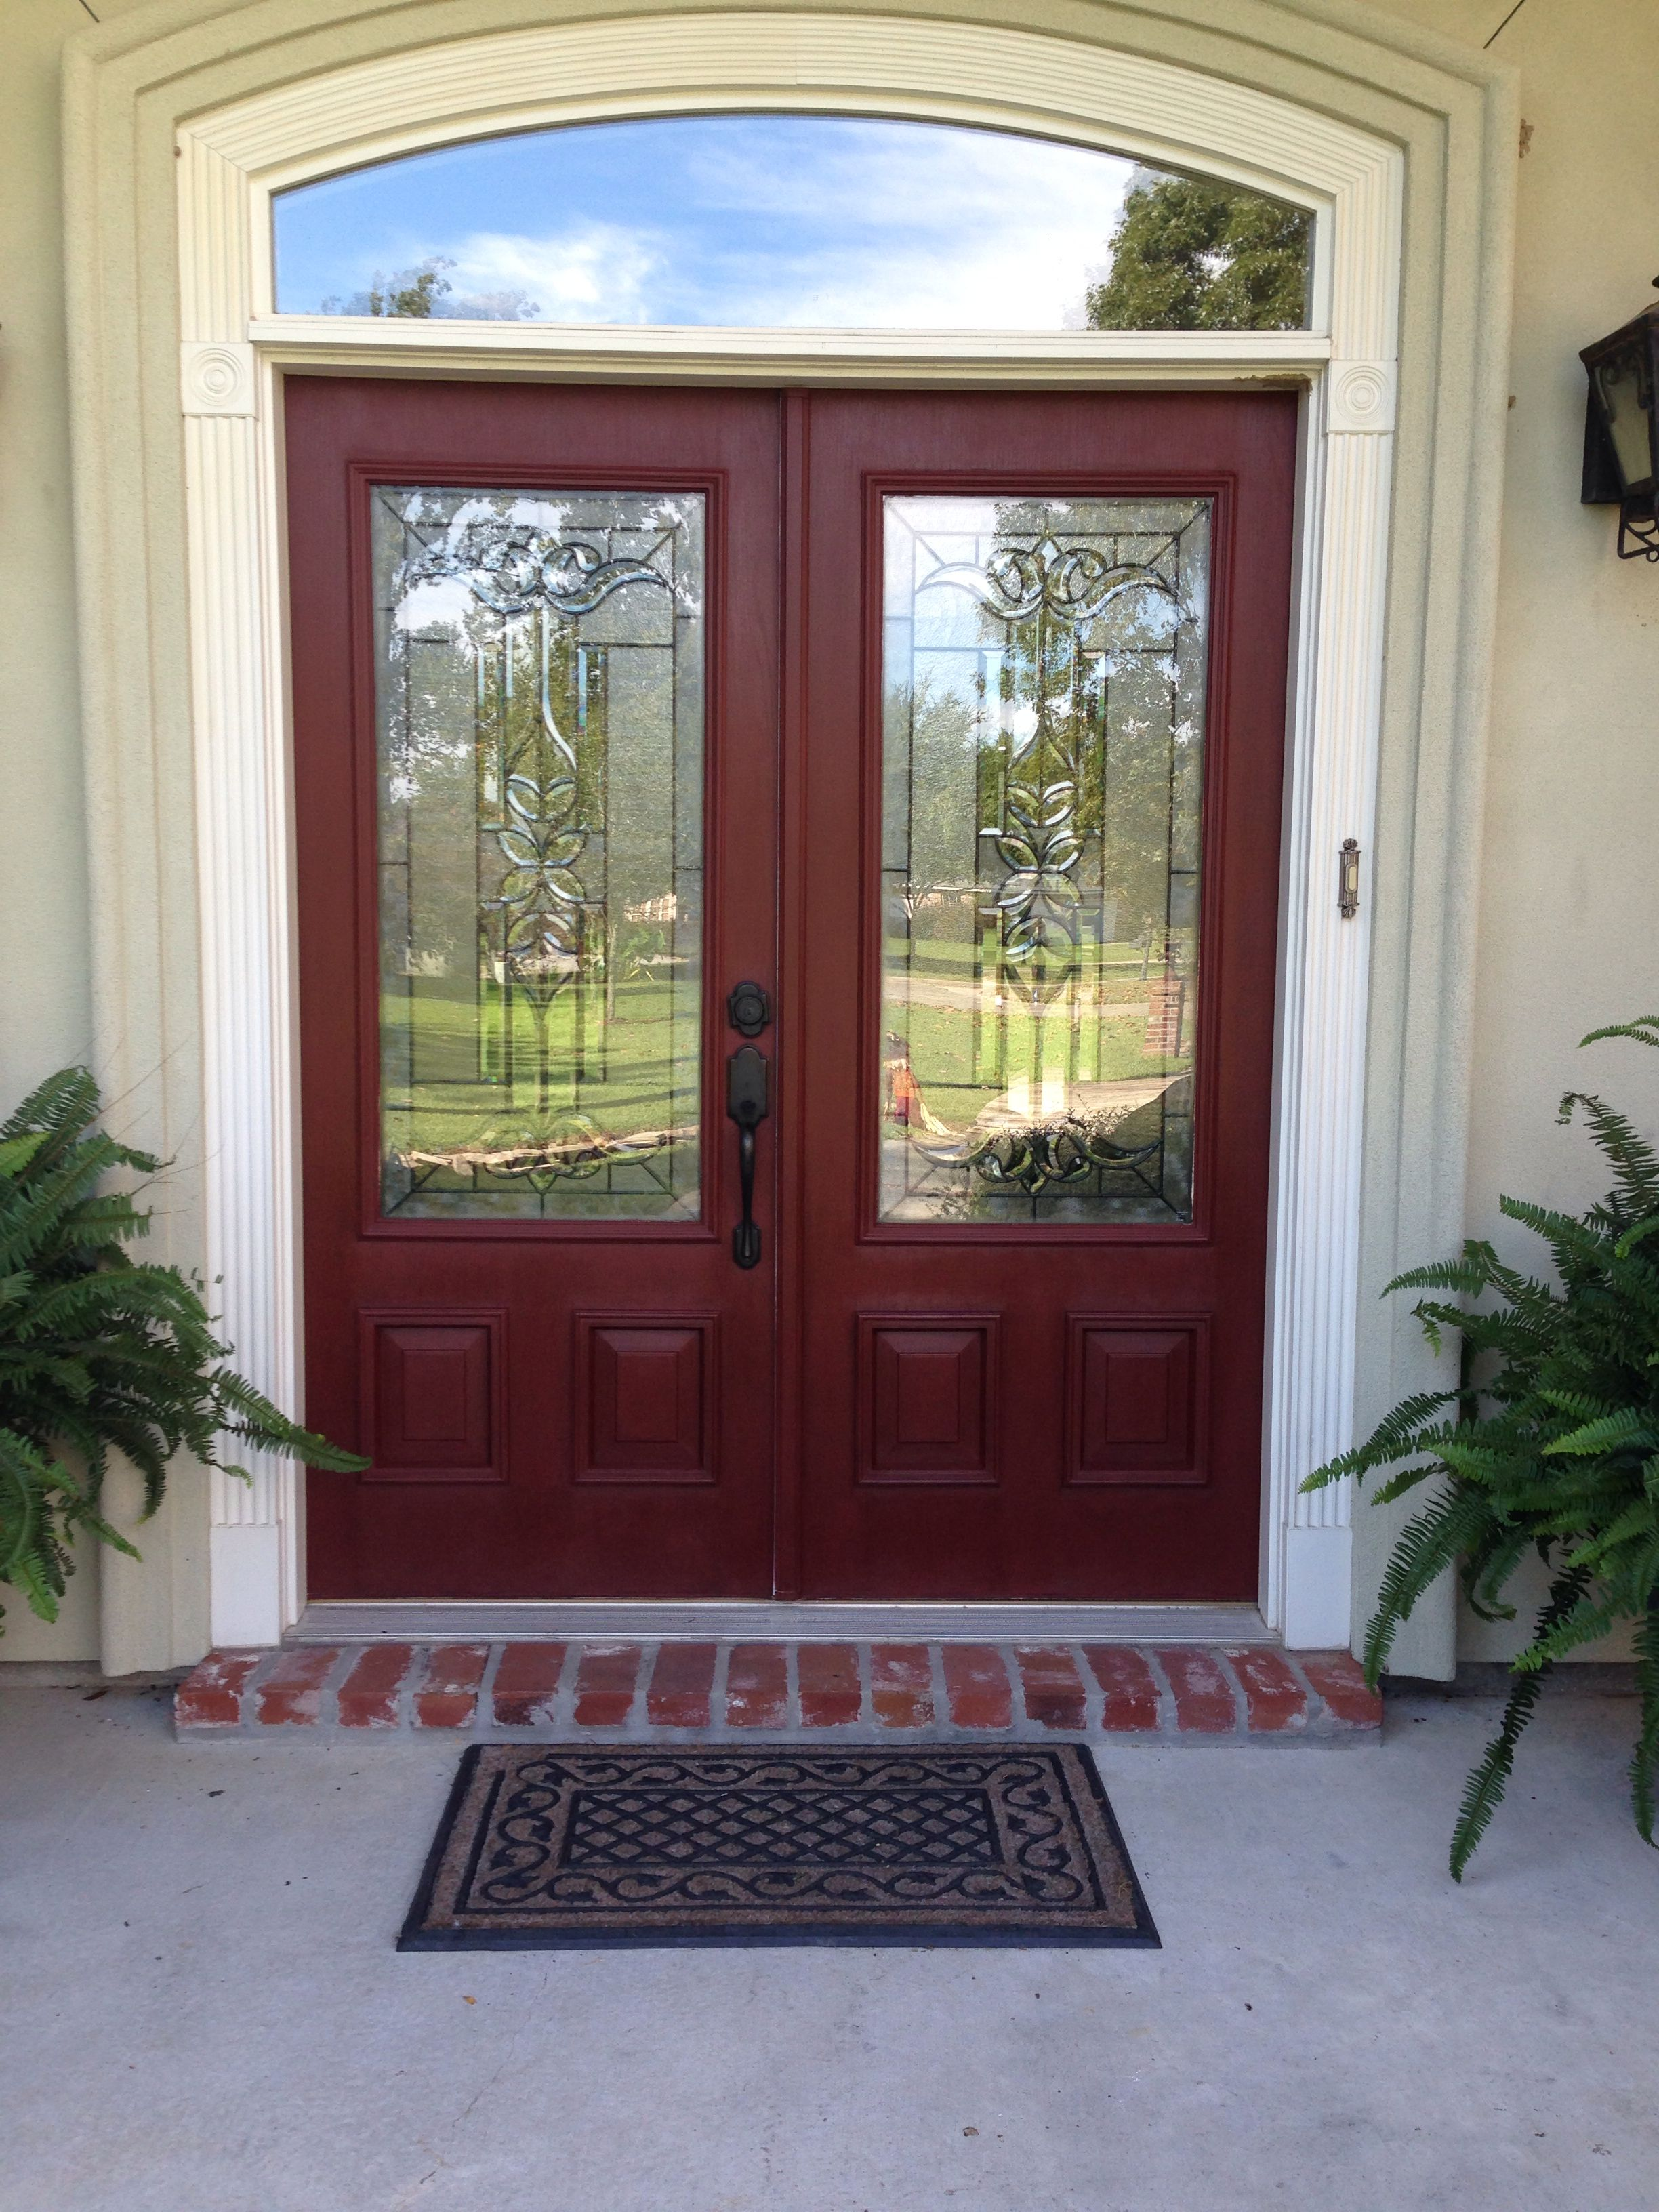 Refinished fiberglass door with 2 coats Annie Sloan chalk paint in Primer Red \u0026 clear wax then dark wax. : door wax - pezcame.com